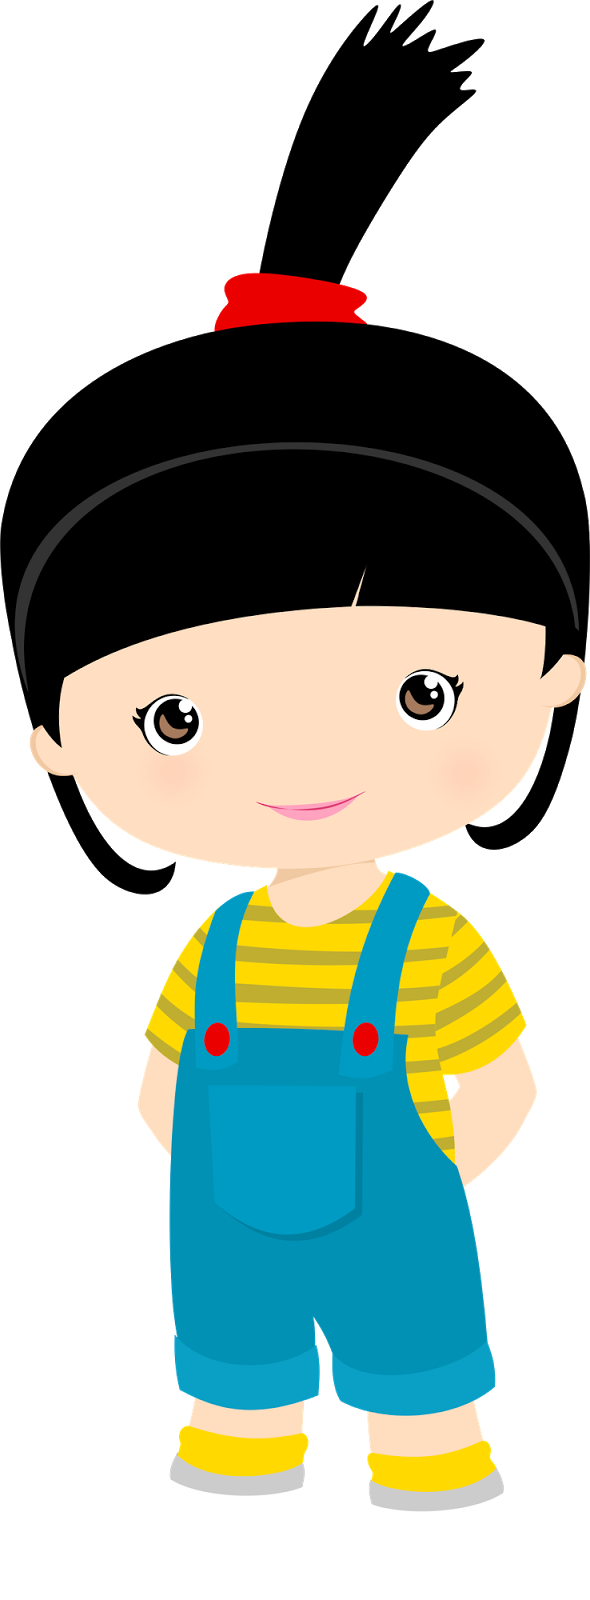 jpg free download Brothers clipart pretty boy. Despicable me and the